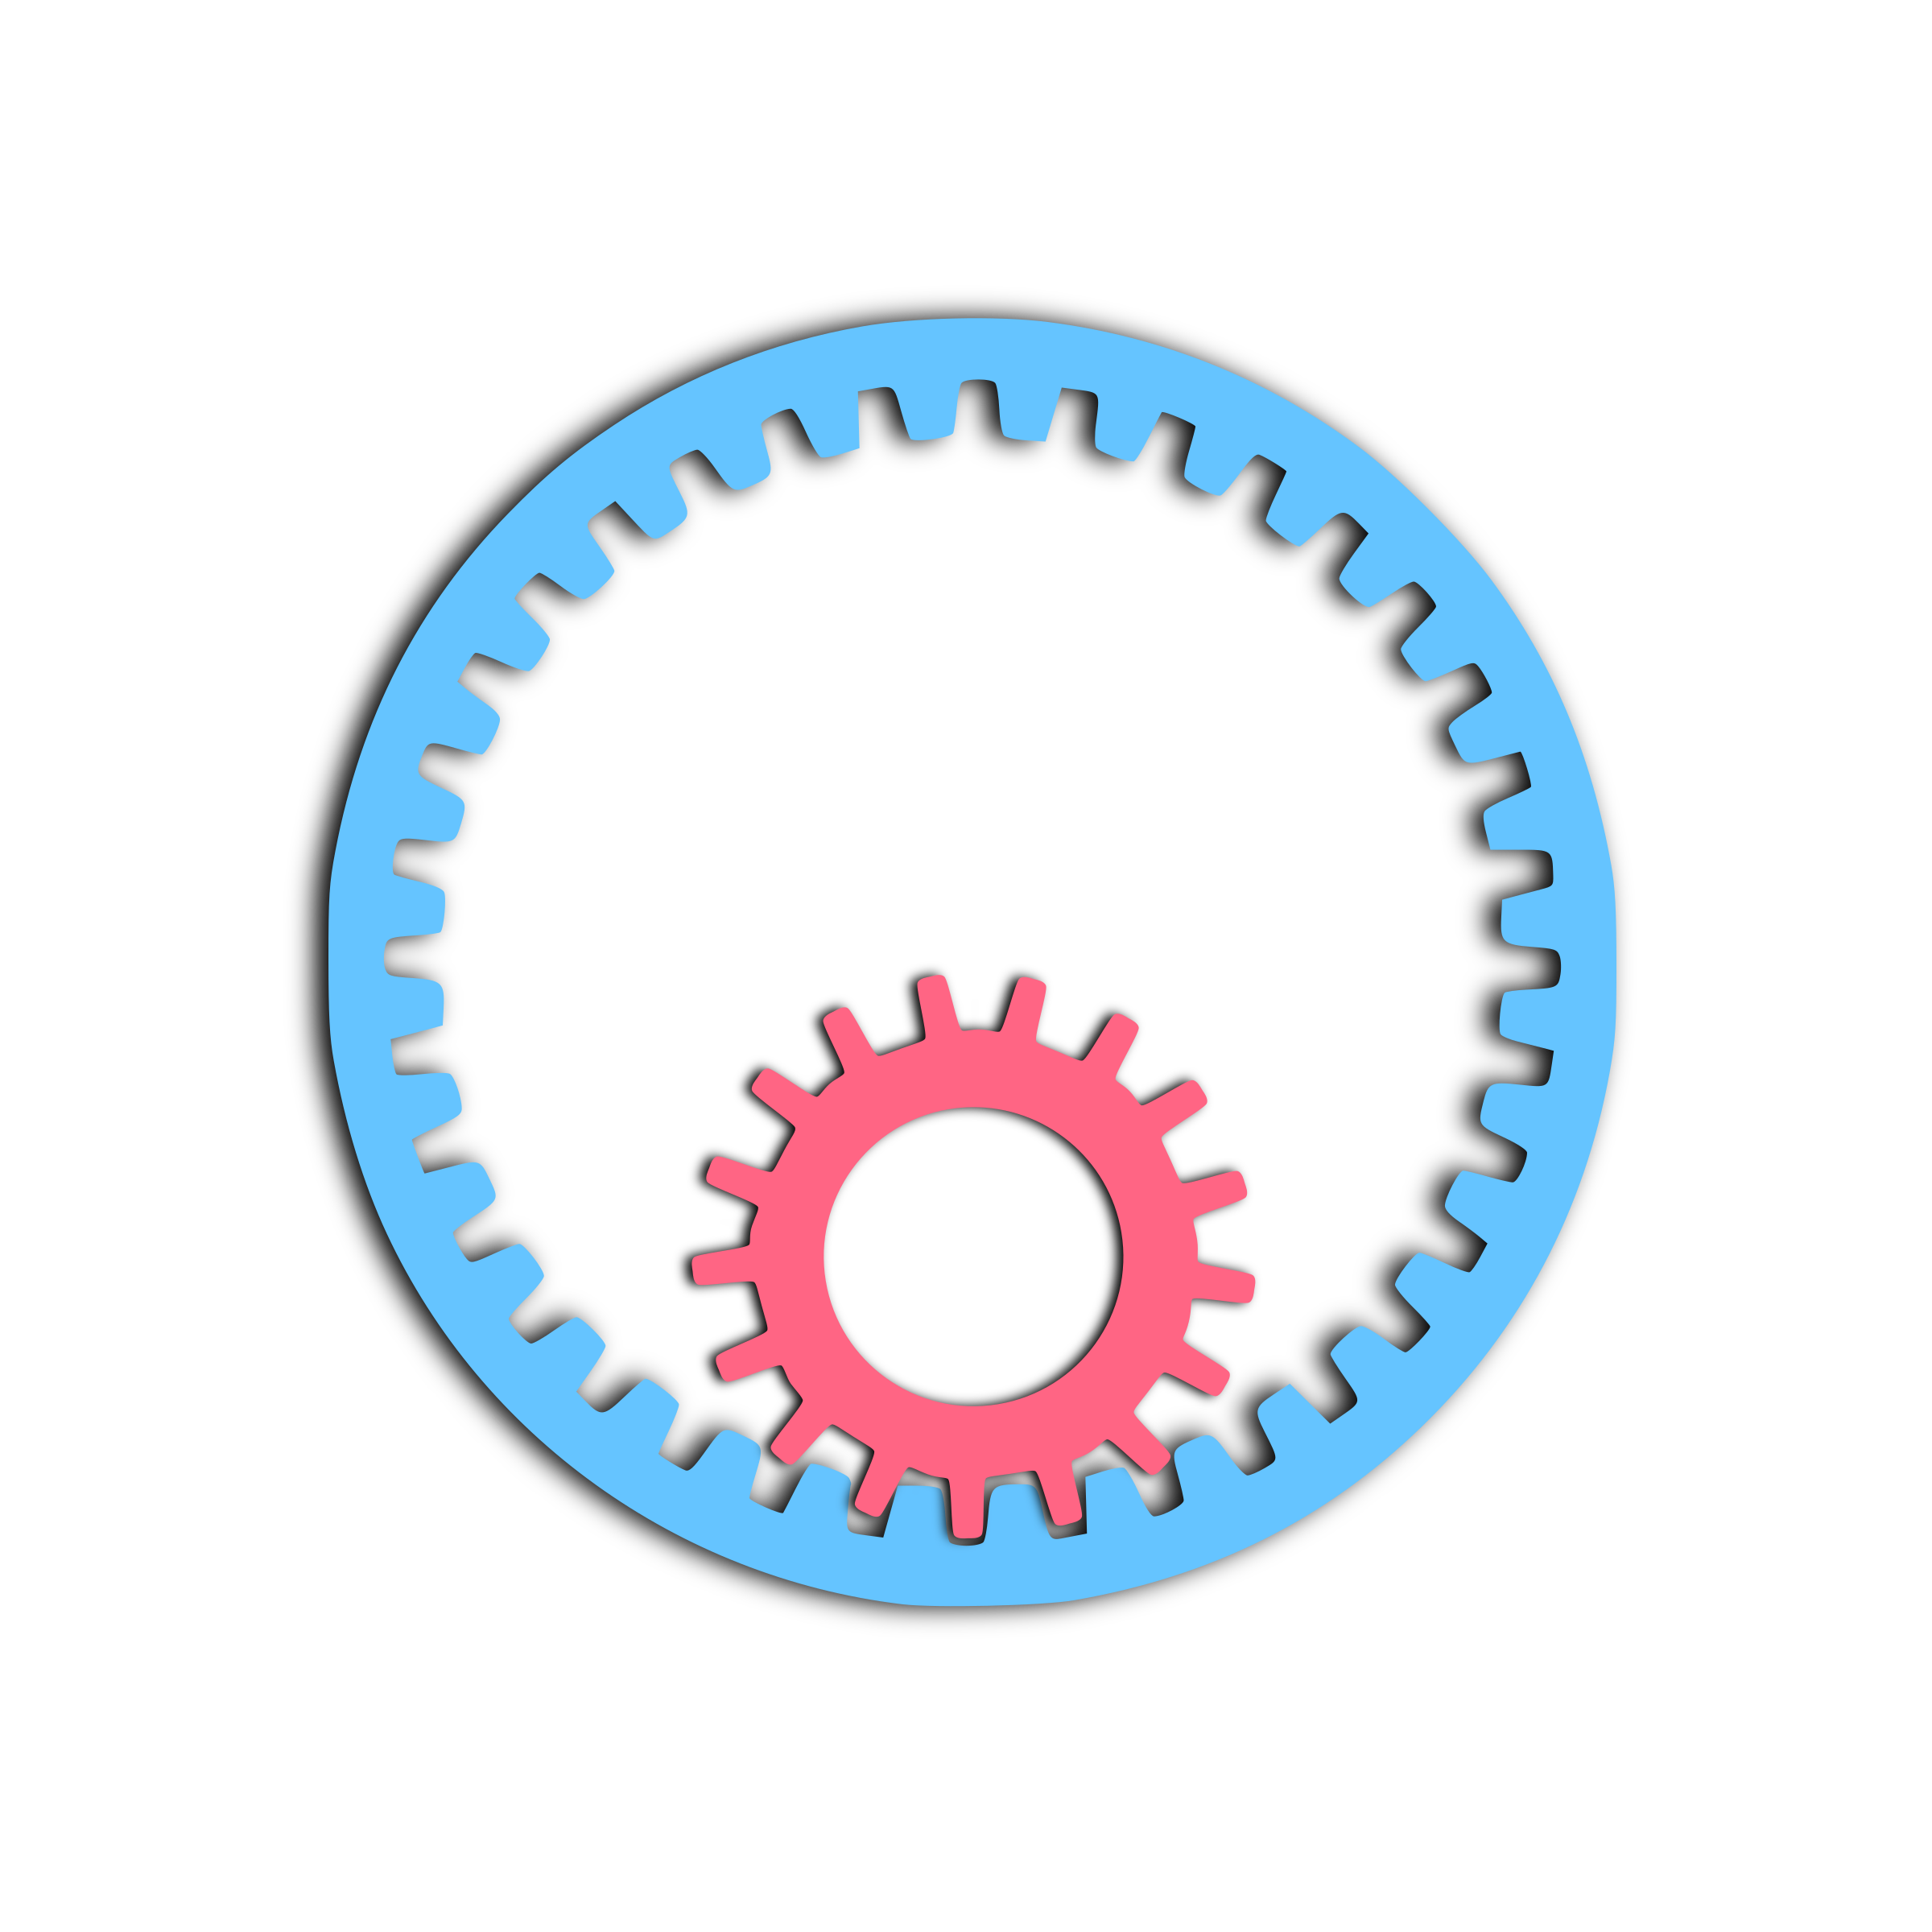 Transparent gear animated. Animation remix icons png